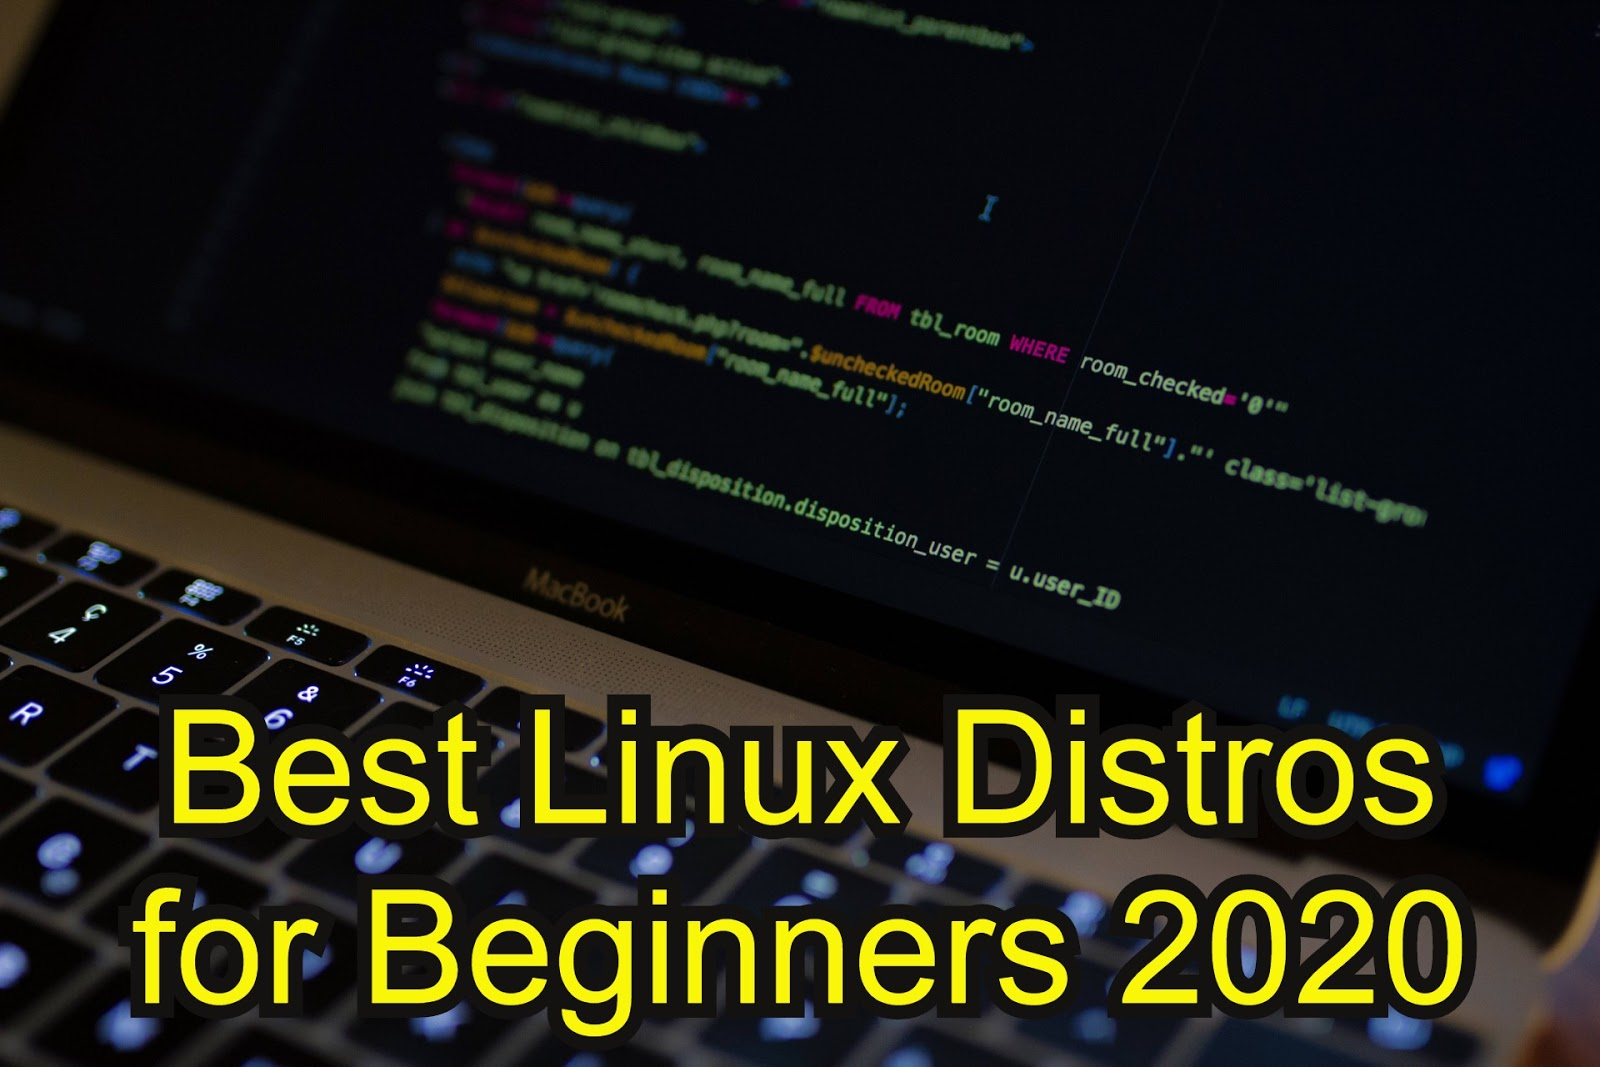 Best Linux Distros for Beginners 2020